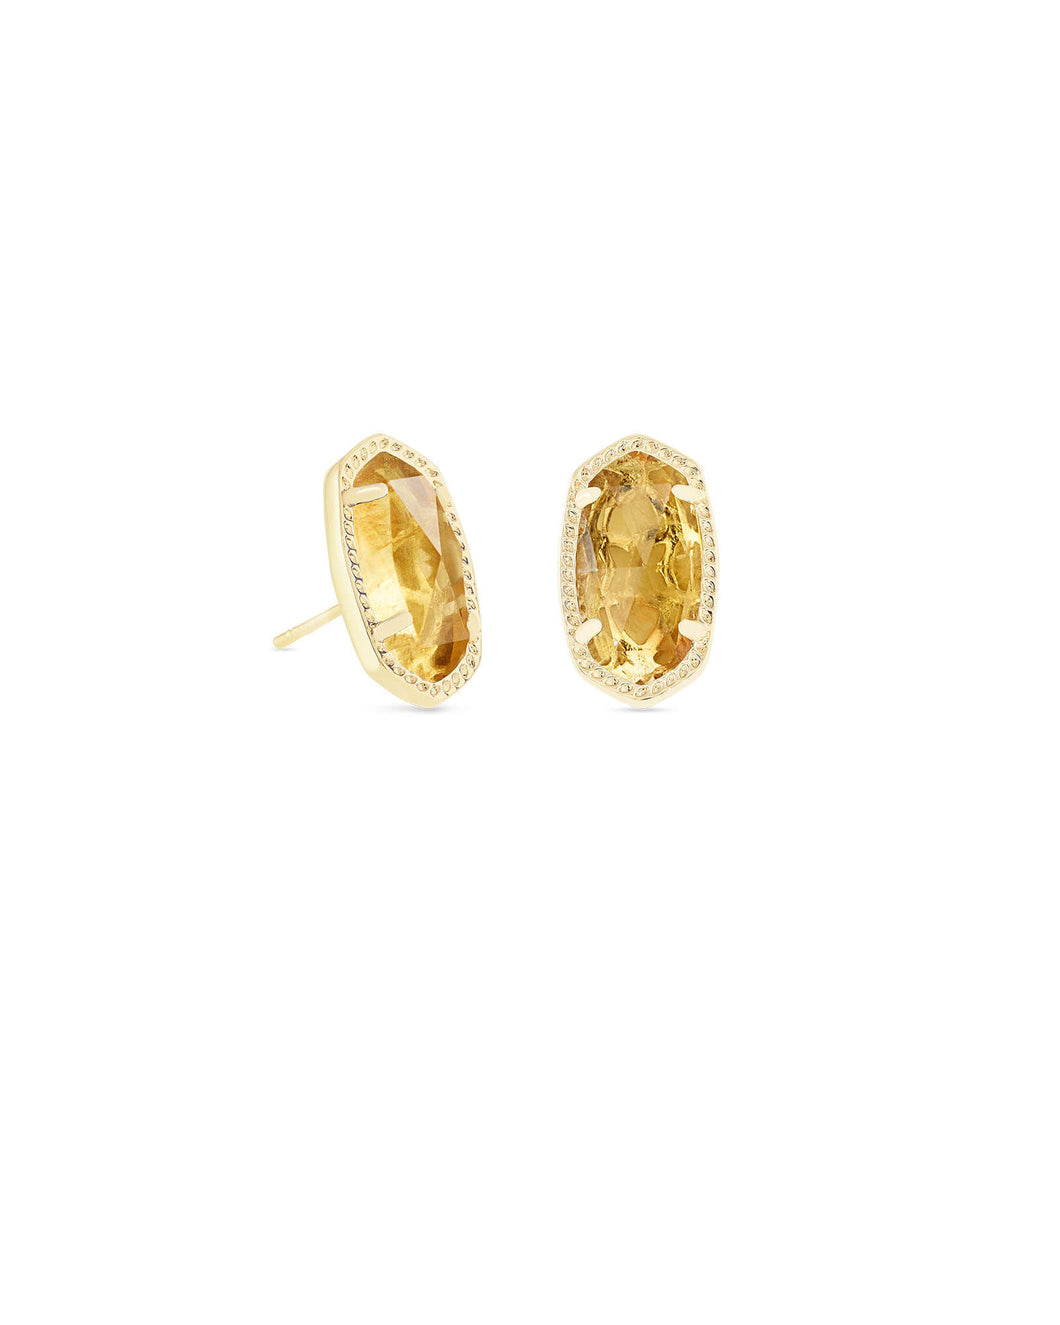 Ellie Gold Stud Earring- Citrine